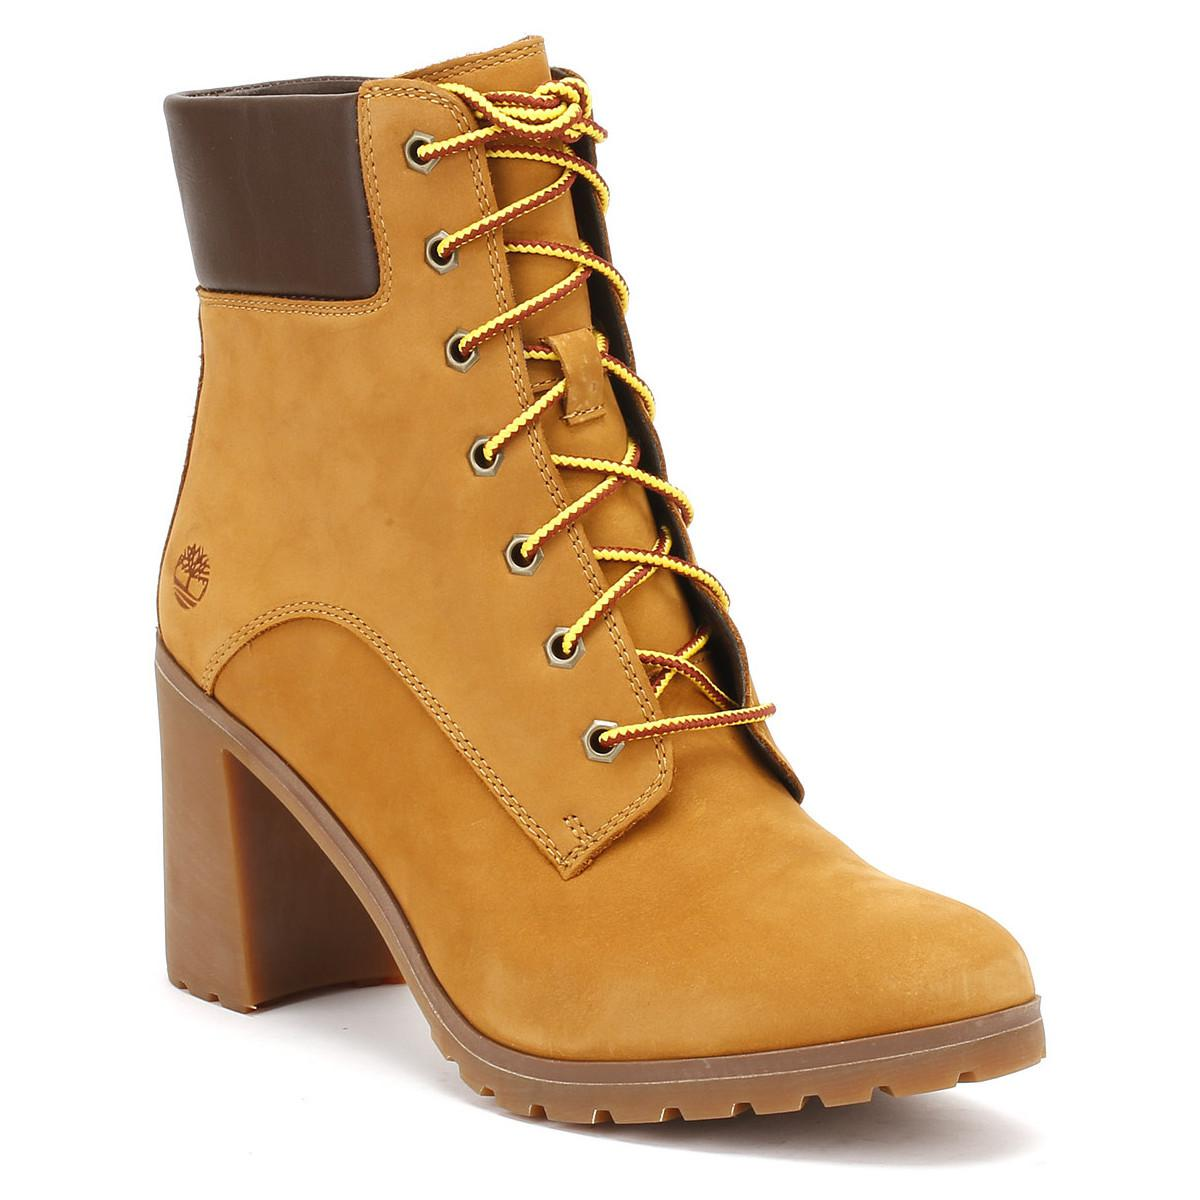 8809592a3b80 Timberland Womens Wheat Yellow Allington 6 Inch Boots Women s Mid ...